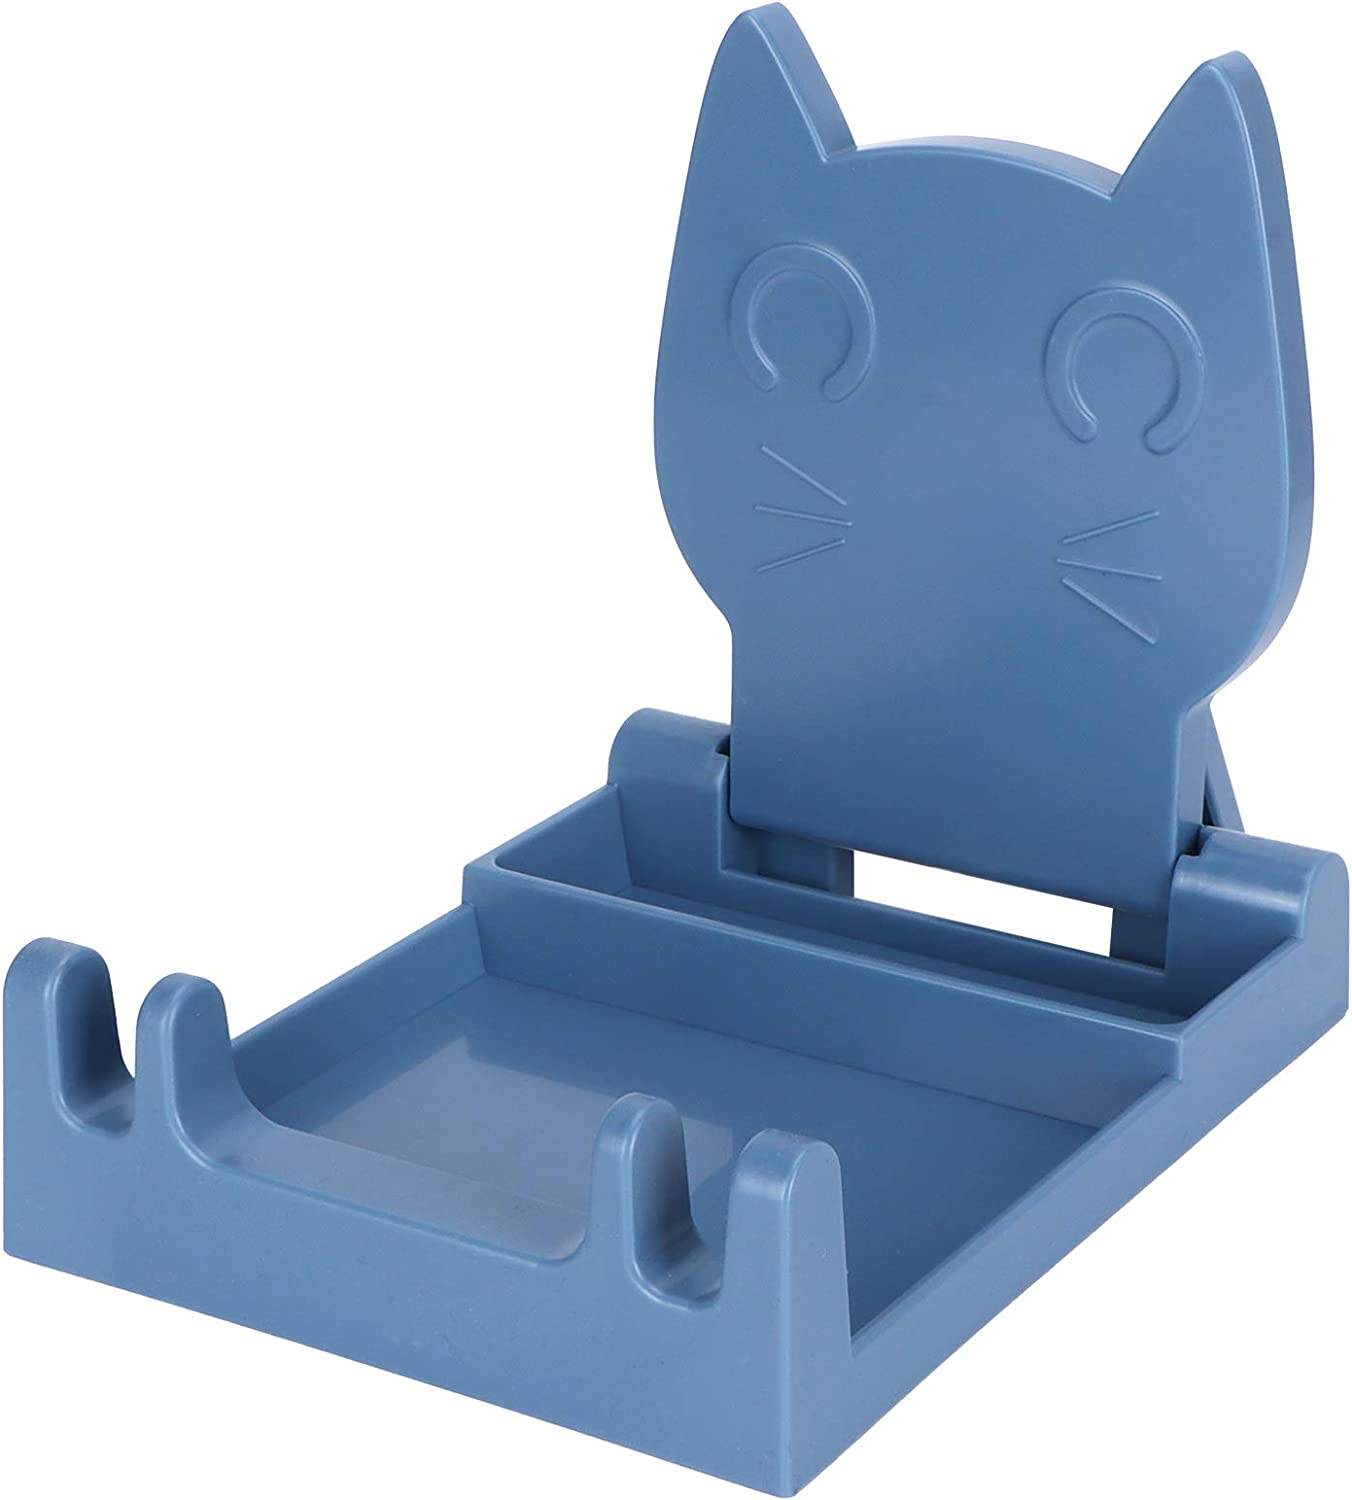 SALUTUY Pot Lid Stand Polystyrene Ventilated Max 40% OFF Storage Rack Folda Selling rankings